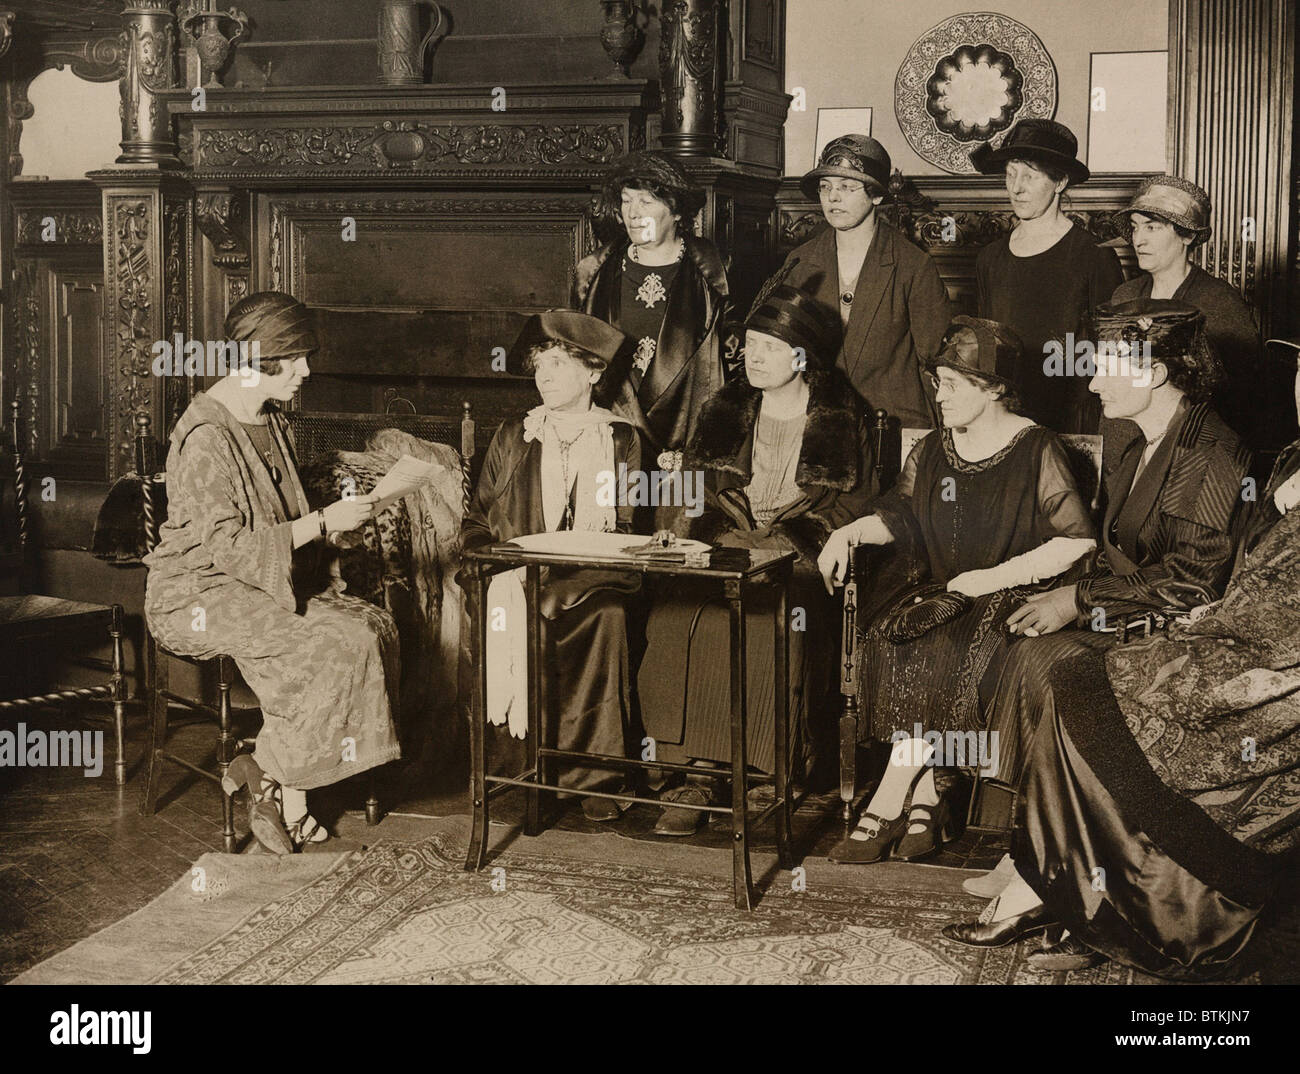 American Alice Paul, leader of the militant National Women's Party meeting with English feminists at American Woman's Club in London. (l to r) Alice Paul, Elizabeth Robins, Viscountess Rhondda, Dr. Louisa Martindale, Mrs. Virginia Crawford, Dorothy Evans, Standing: Emmeline Pethick-Lawrence, Alison Neilans, Florence Underwood, Miss Barry. Stock Photo